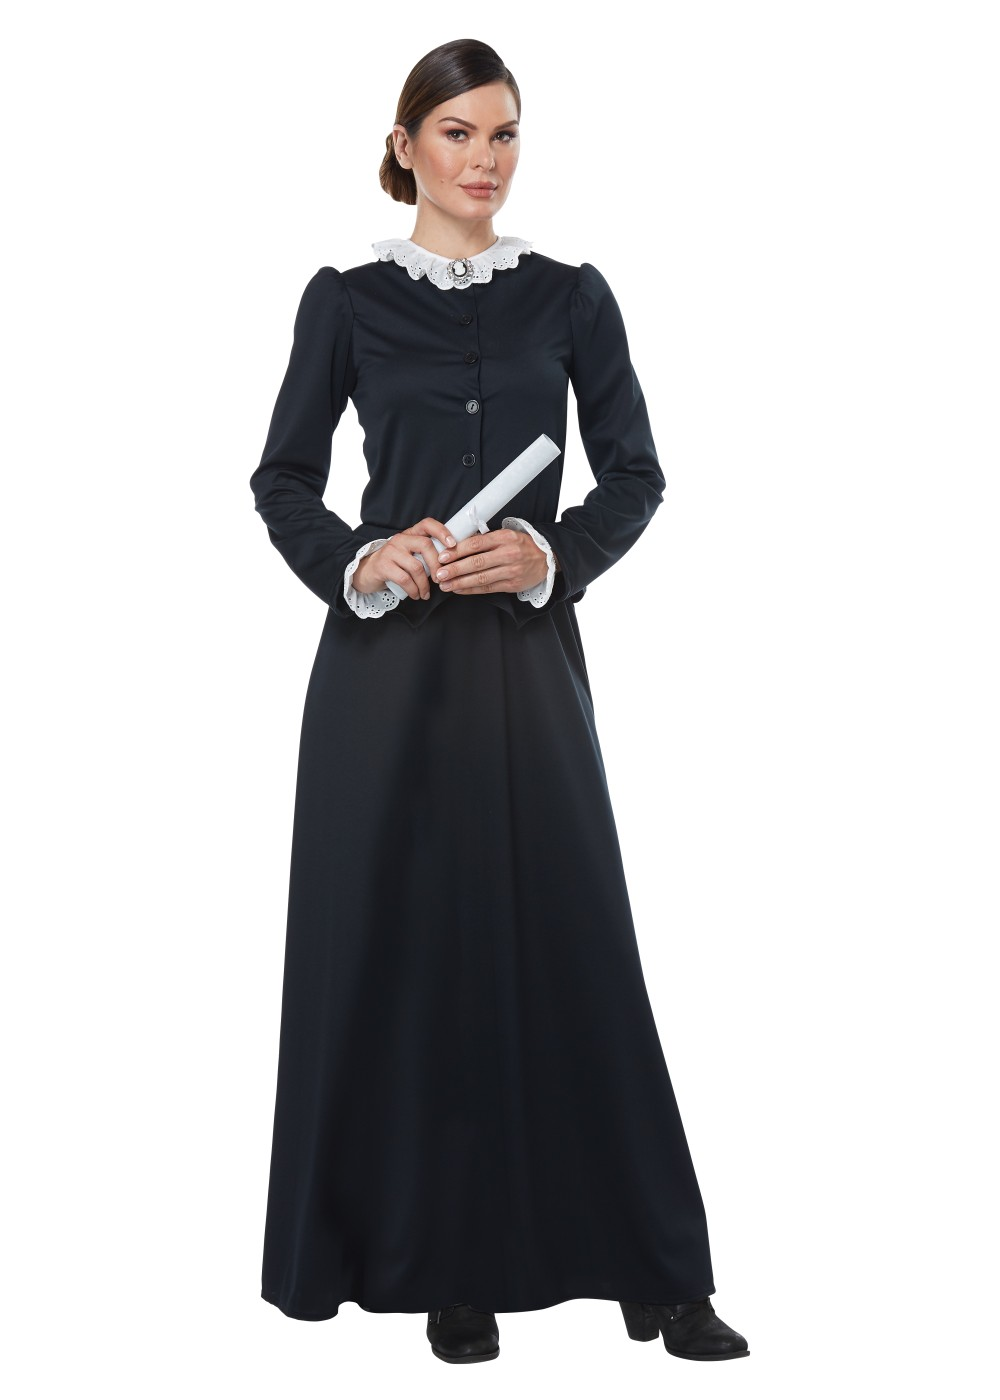 Susan B. Anthony Harriet Tubman Costume